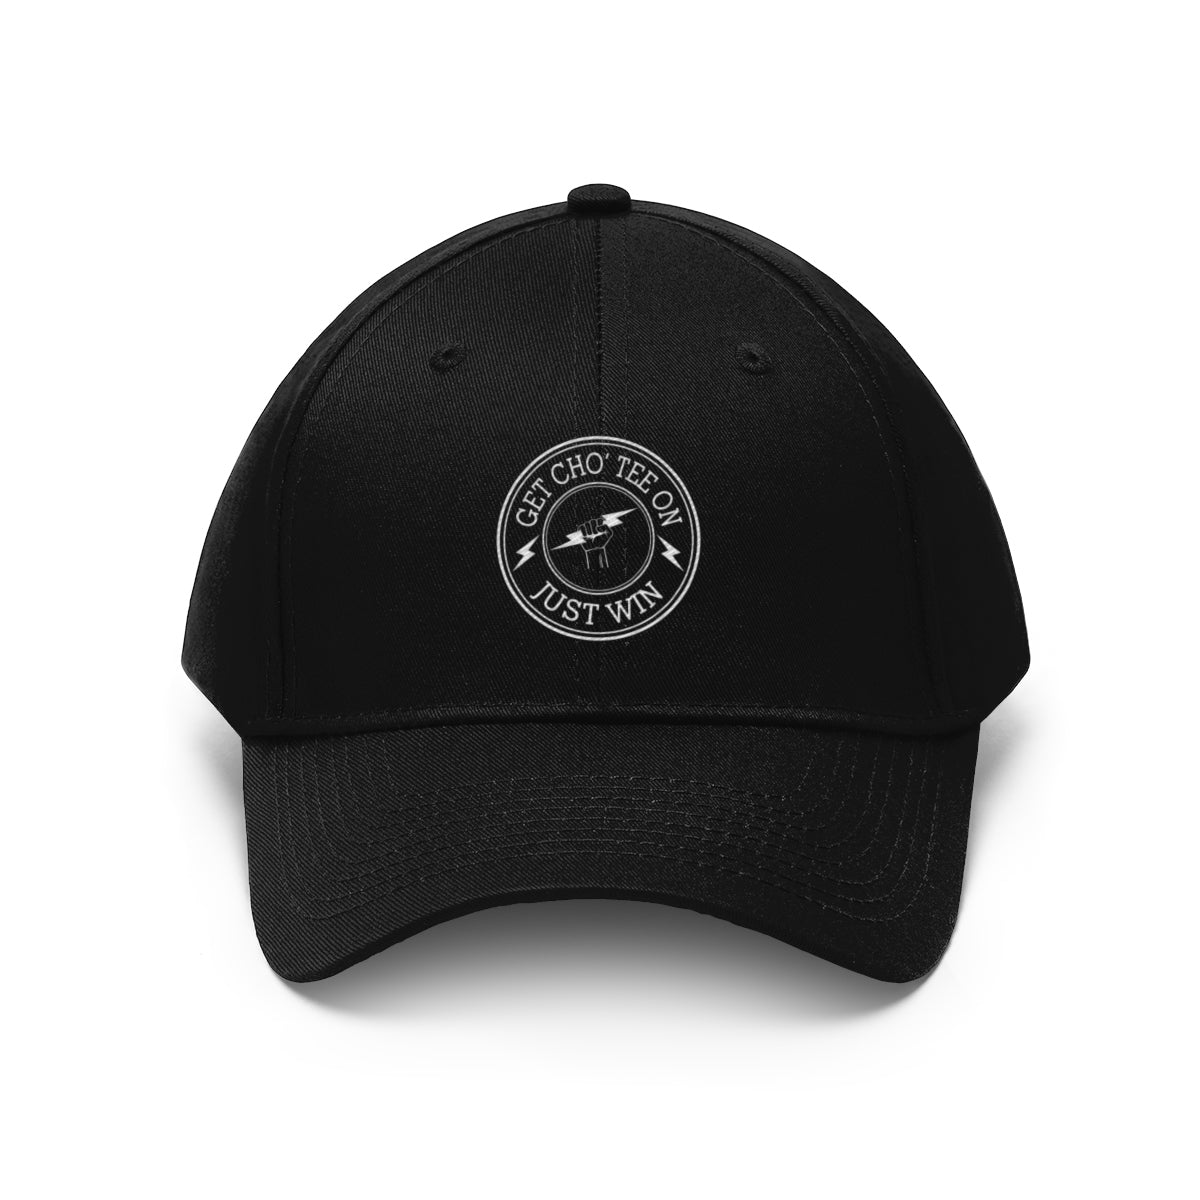 GCTO Just Win Hat